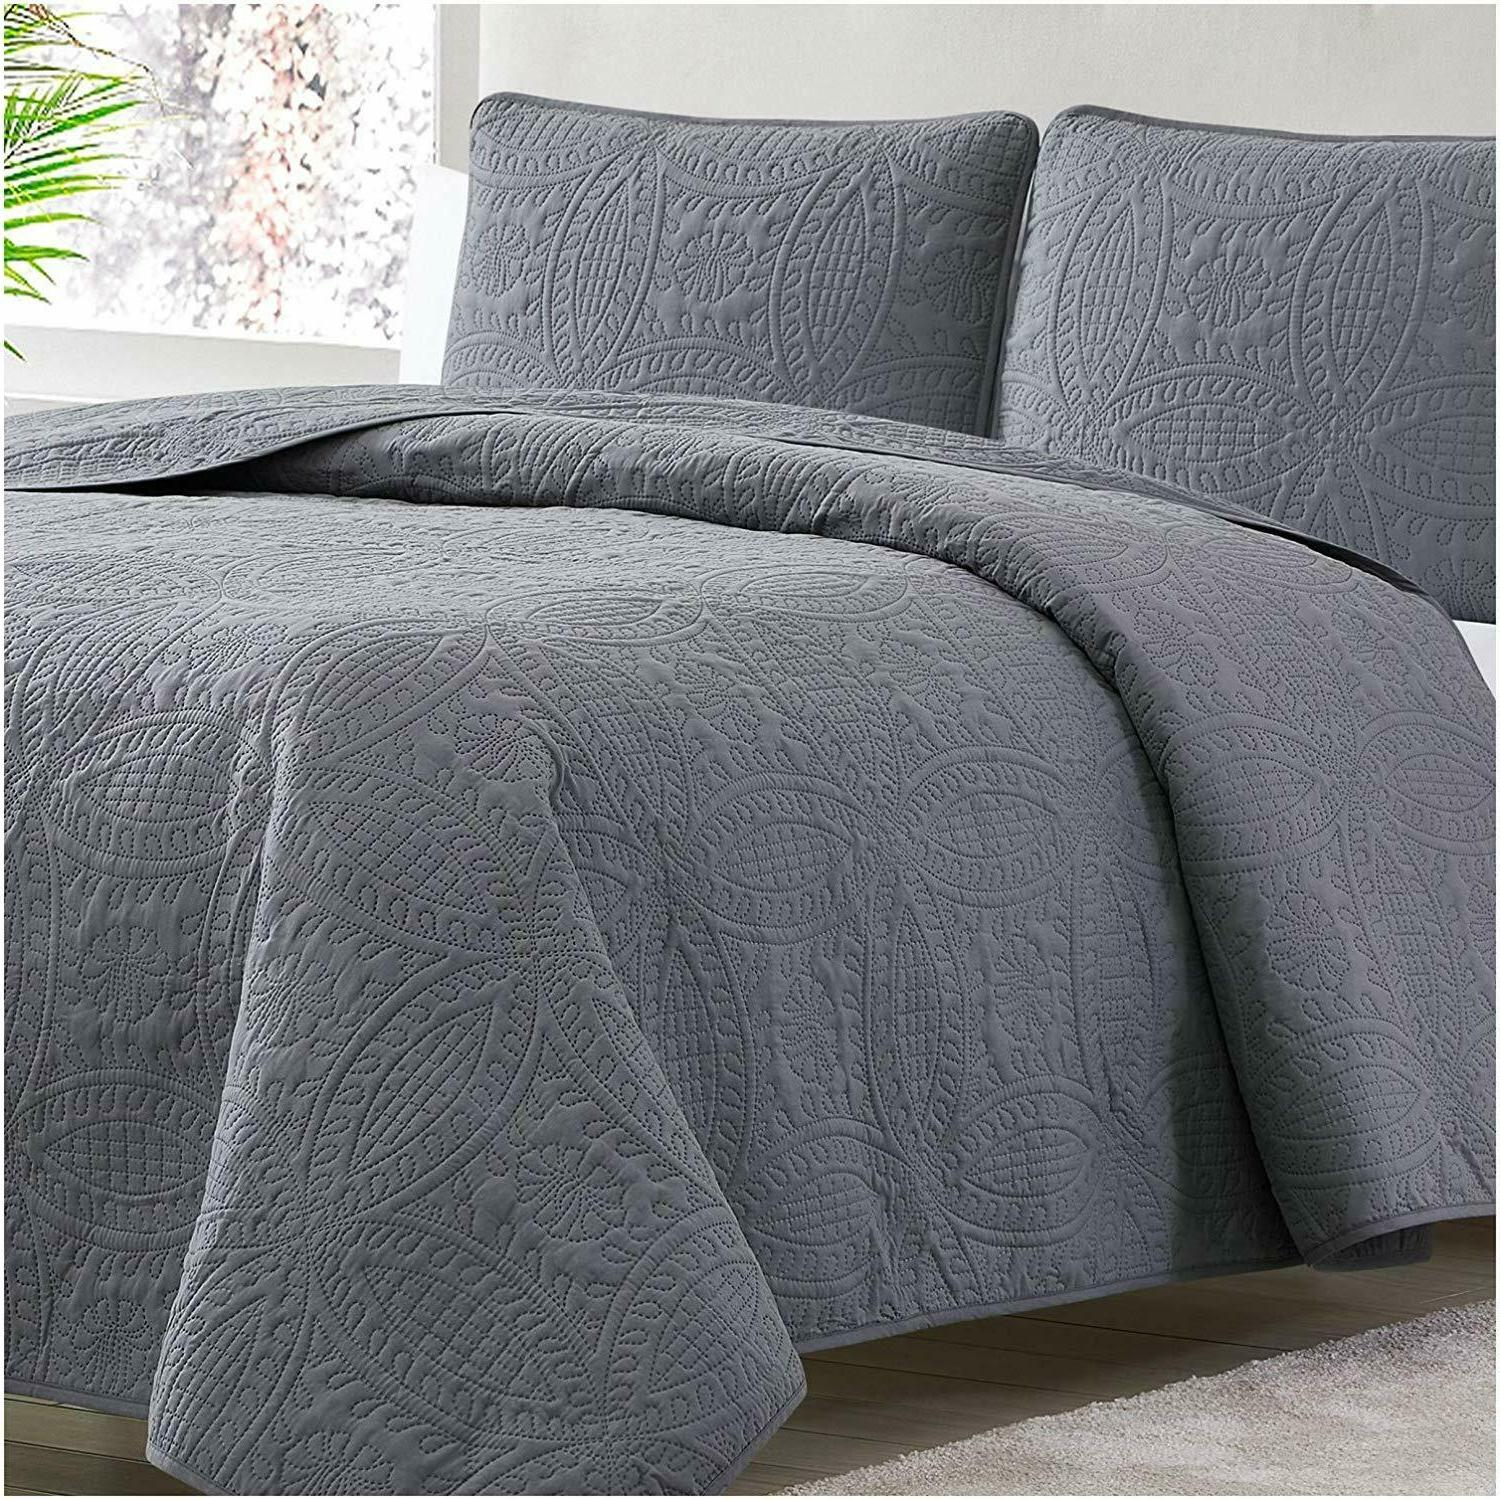 Mellanni Coverlet 3-Piece Oversized Bed Cover, Ultrasonic Quilt